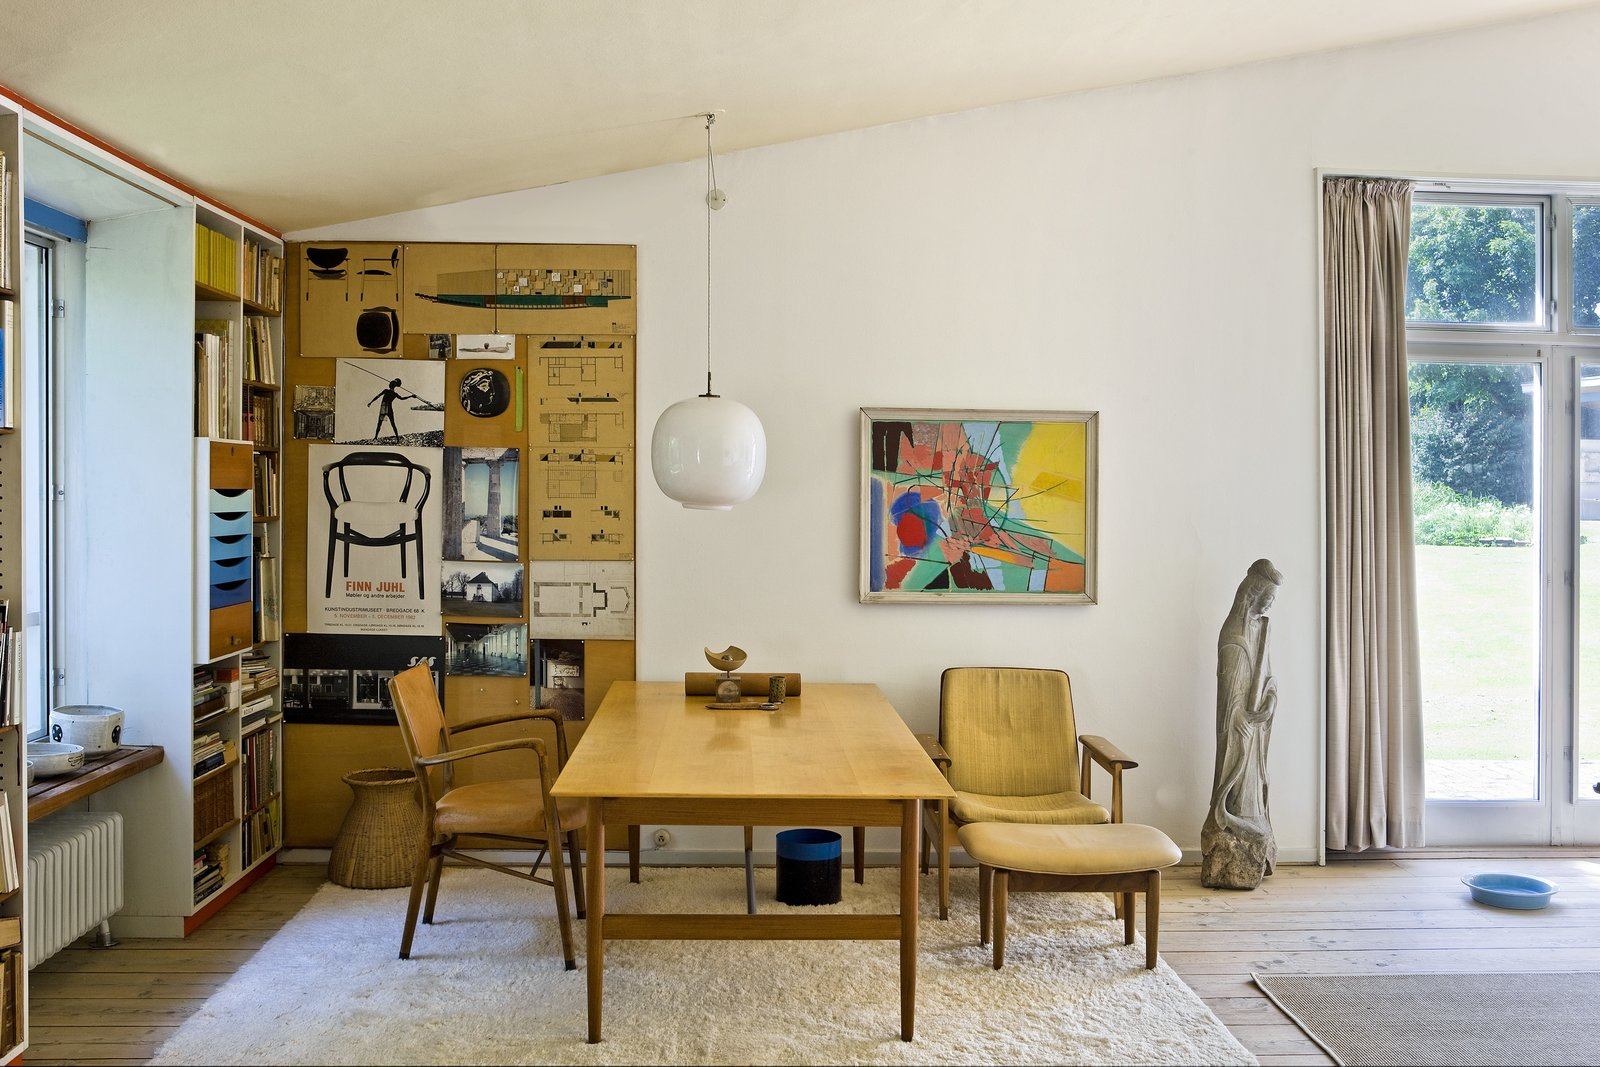 Architectural ispiration and exhibition posters fill the walls of Juhl's home office. Two chairs of Juhl's design are placed on the side of his desk, designed in 1945.  Midcentury Homes by Dwell from The Highly Personal House of Danish Design Great Finn Juhl